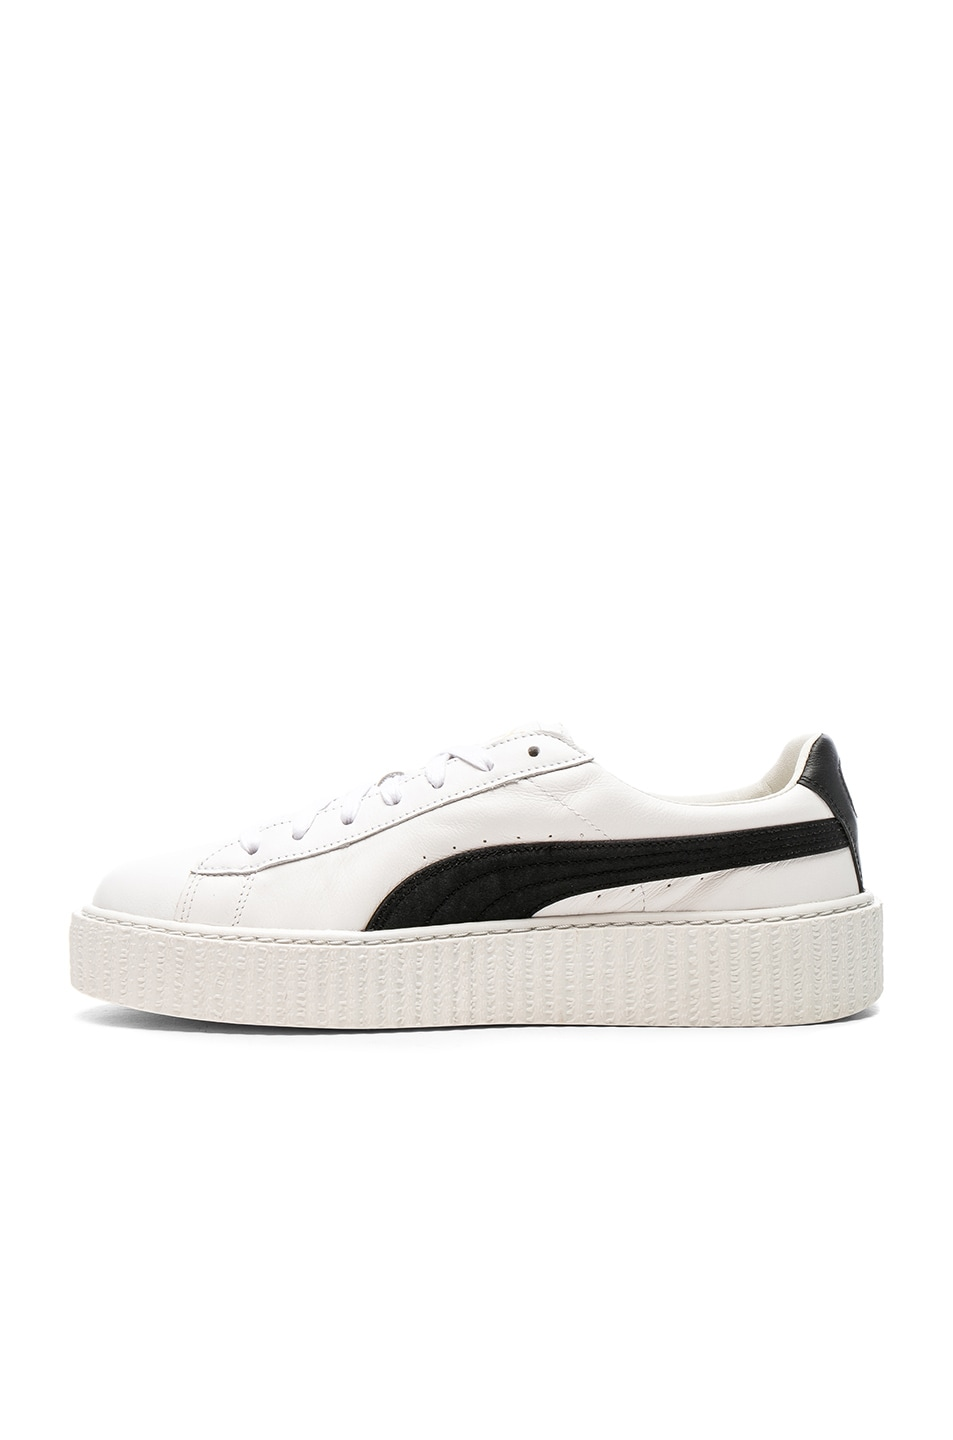 hot sale online 56615 c6b7e Fenty by Puma Cracked Leather Creepers in Black & White   FWRD